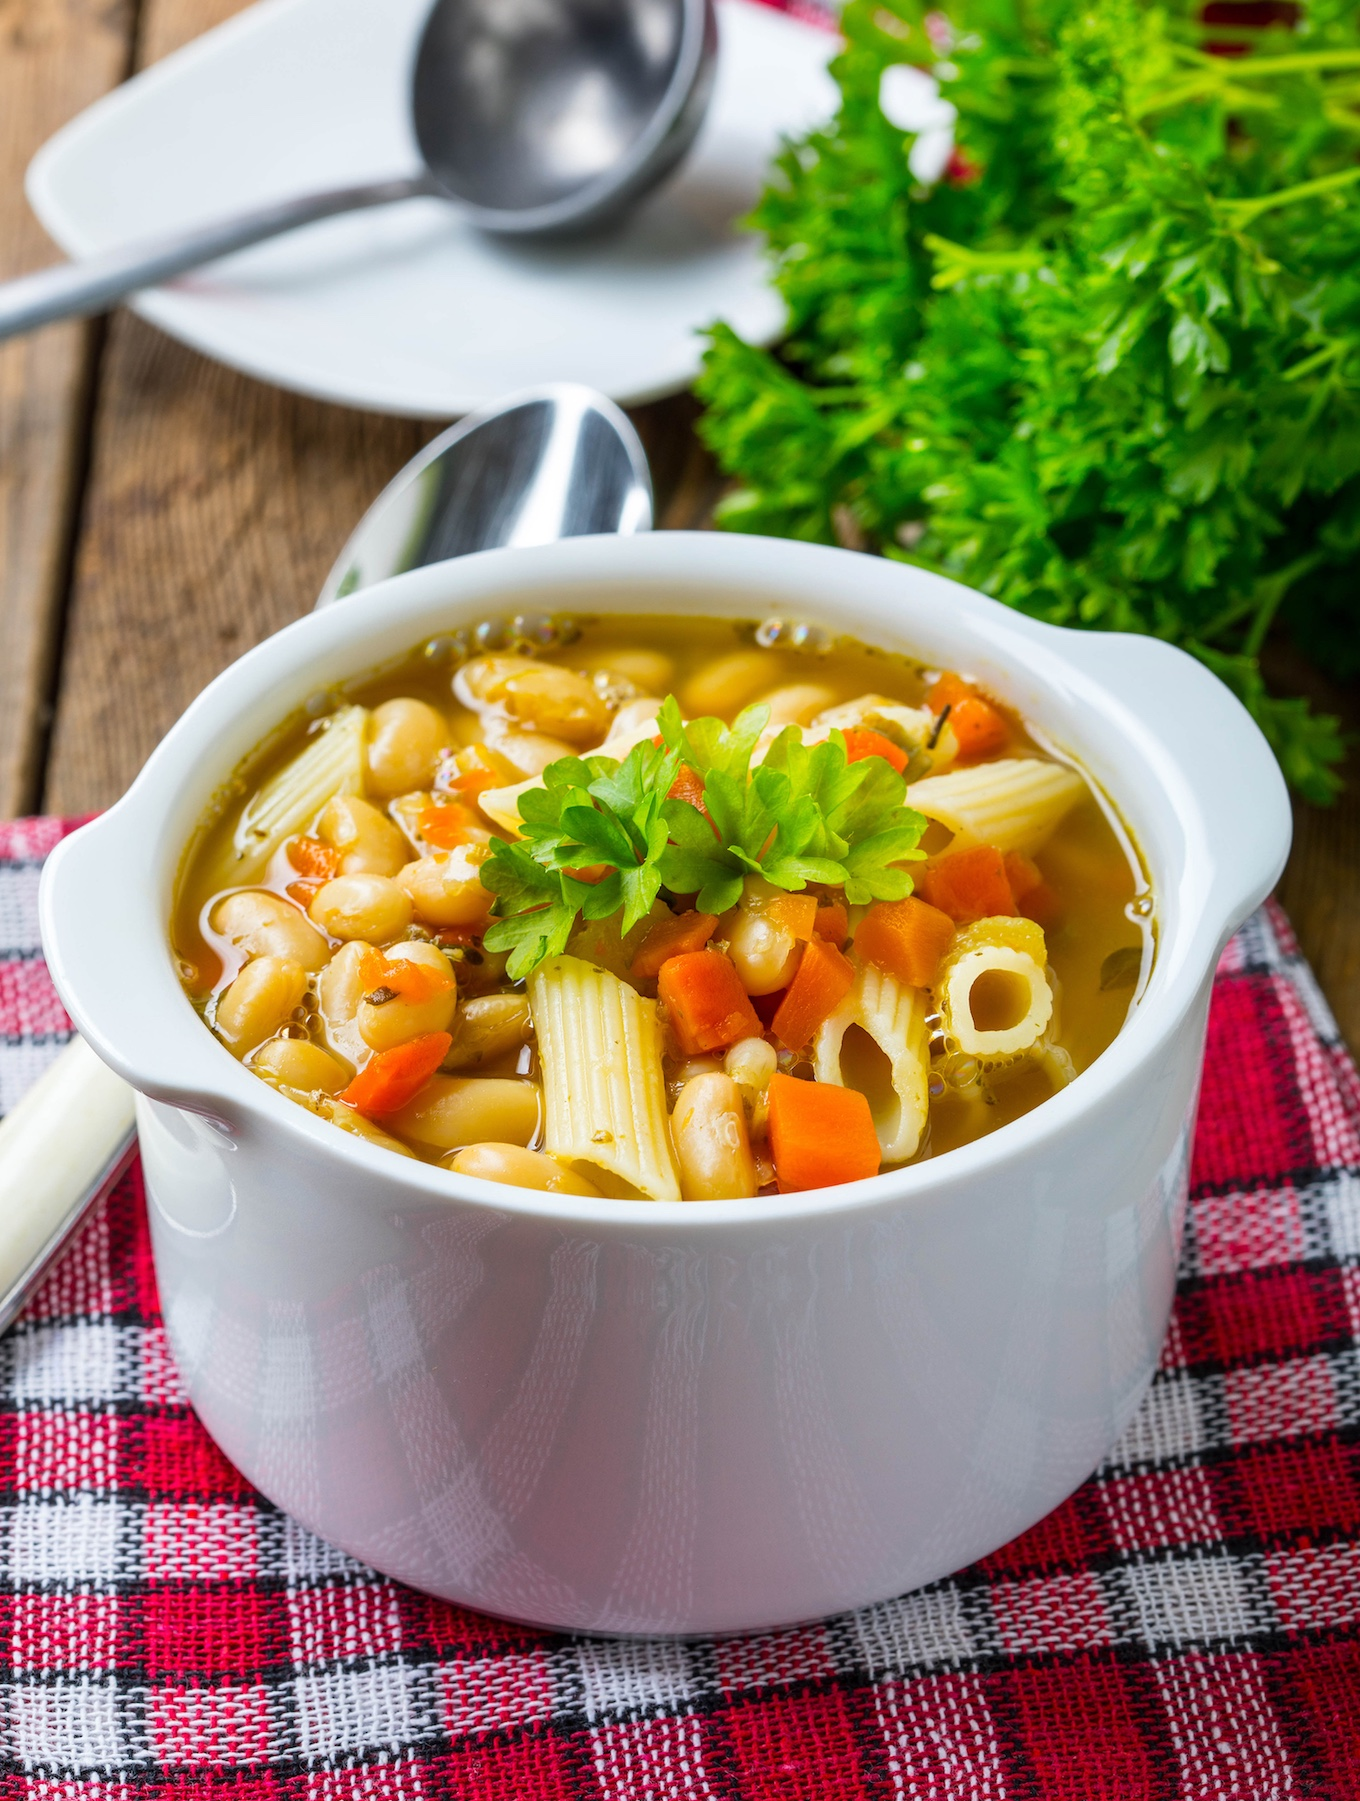 Italian Pasta and Bean Soup With Penne